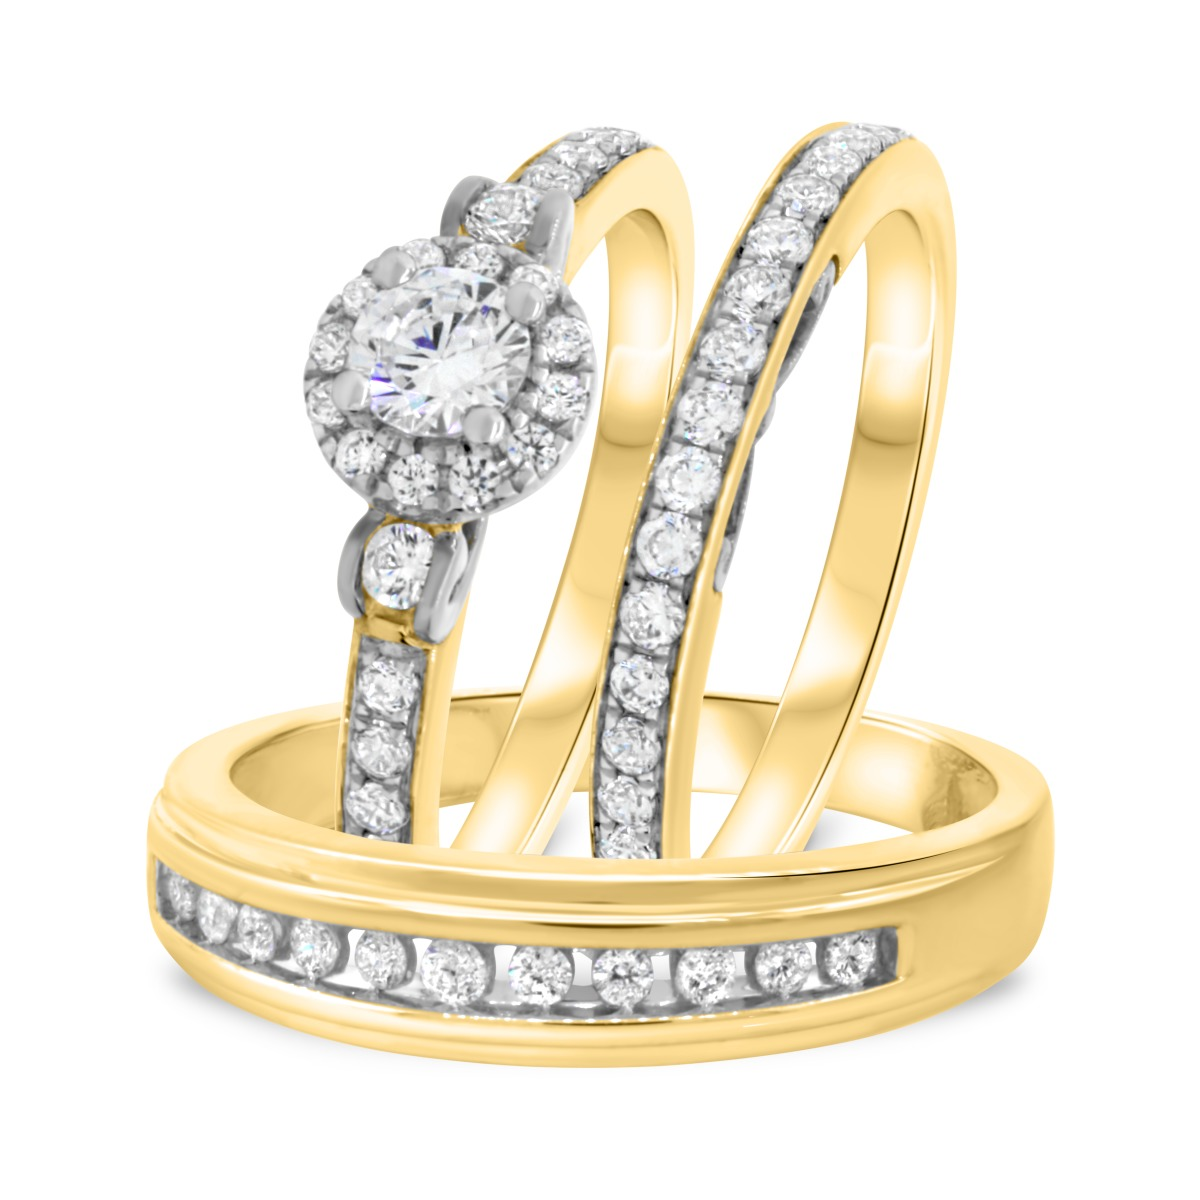 1 CT. T.W. Diamond Trio Matching Wedding Ring Set 10K Yellow Gold